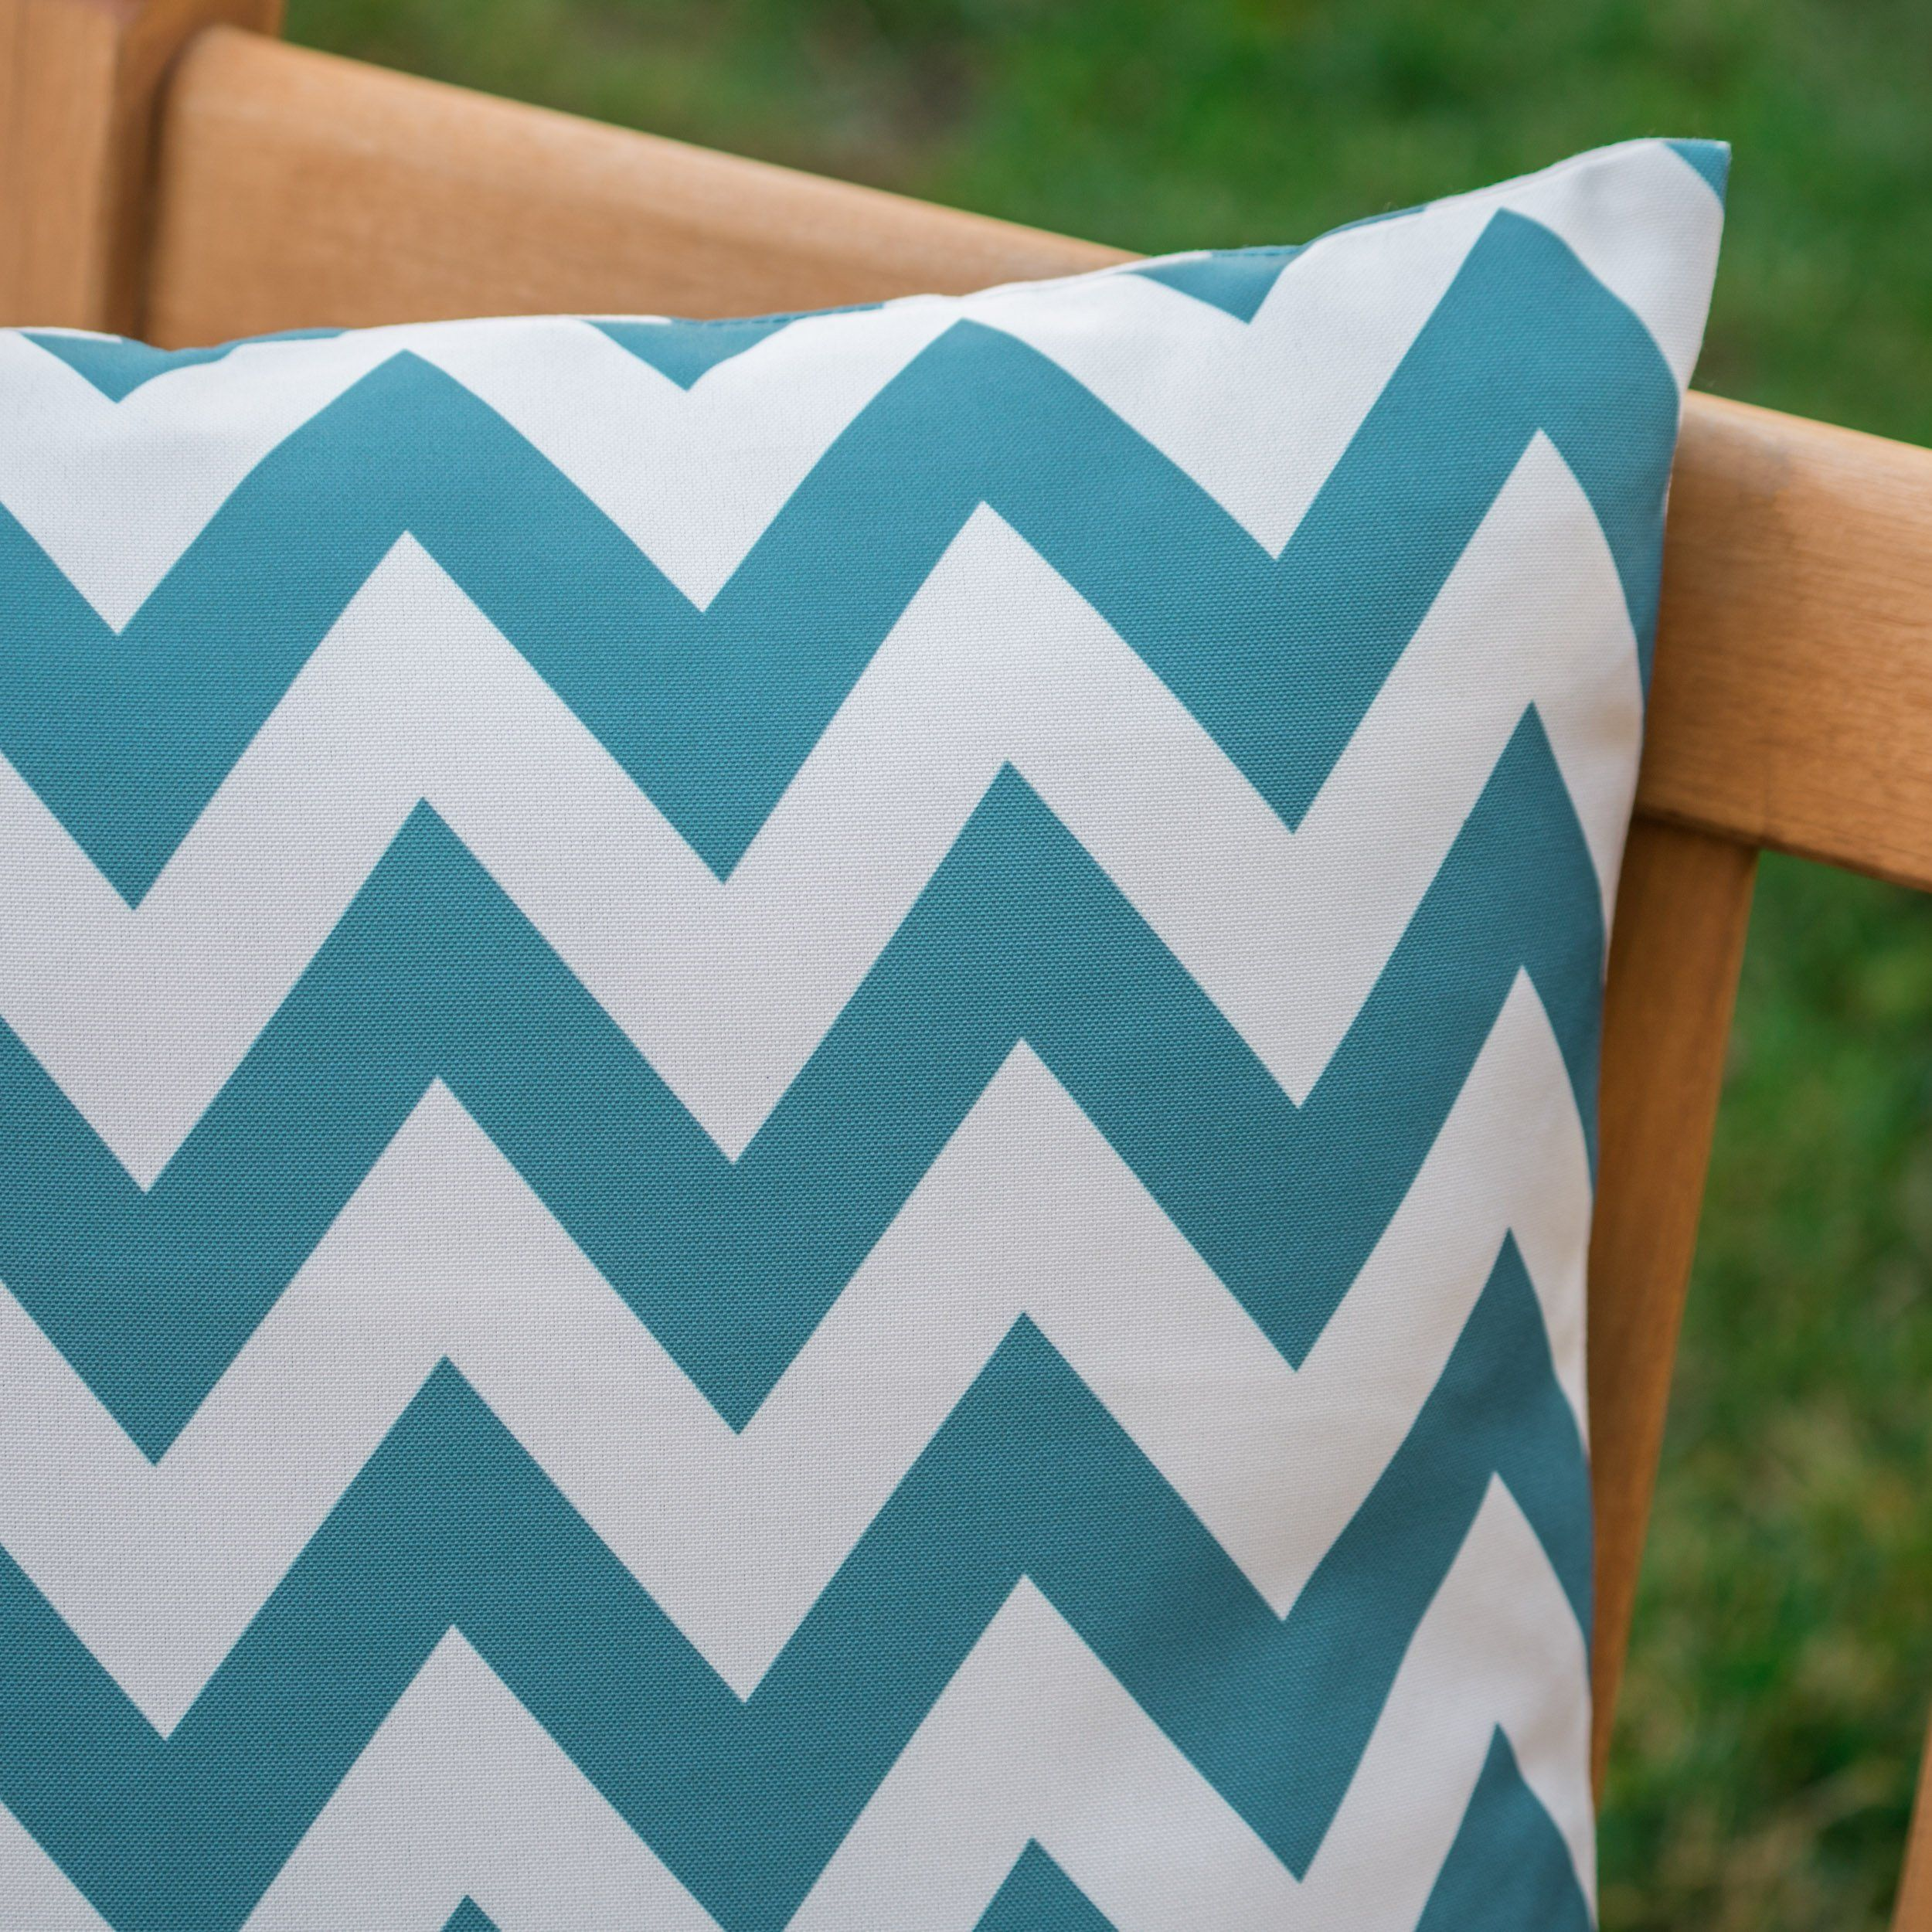 Embry Outdoor Water Resistant Square and Rectangular Pillows - Set of 4 - Orange/White